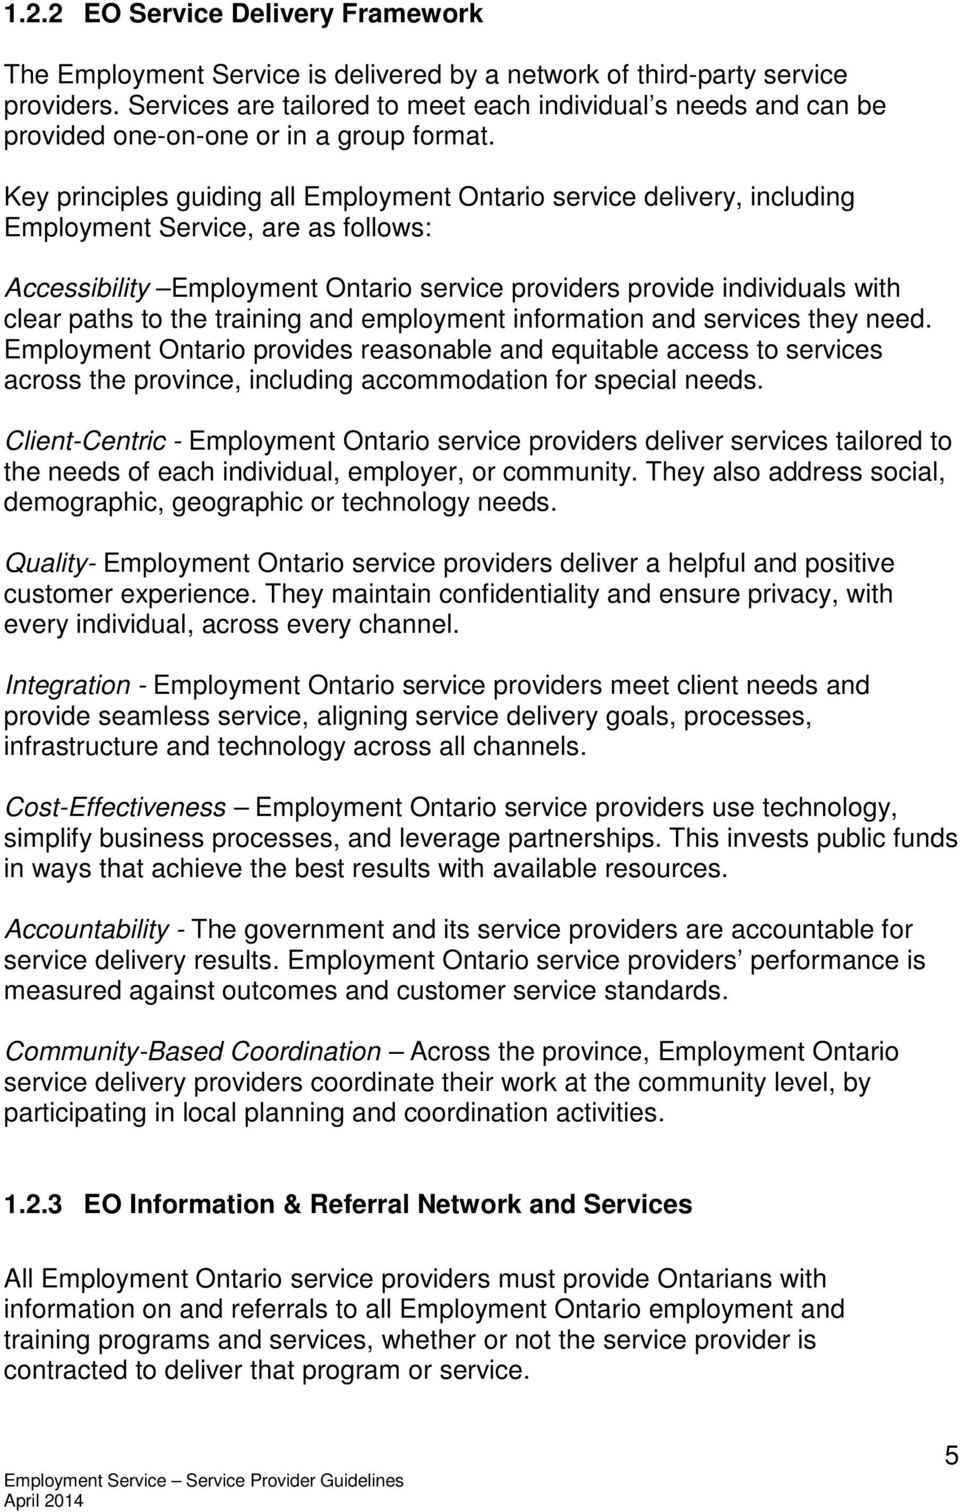 Key principles guiding all Employment Ontario service delivery, including Employment Service, are as follows: Accessibility Employment Ontario service providers provide individuals with clear paths